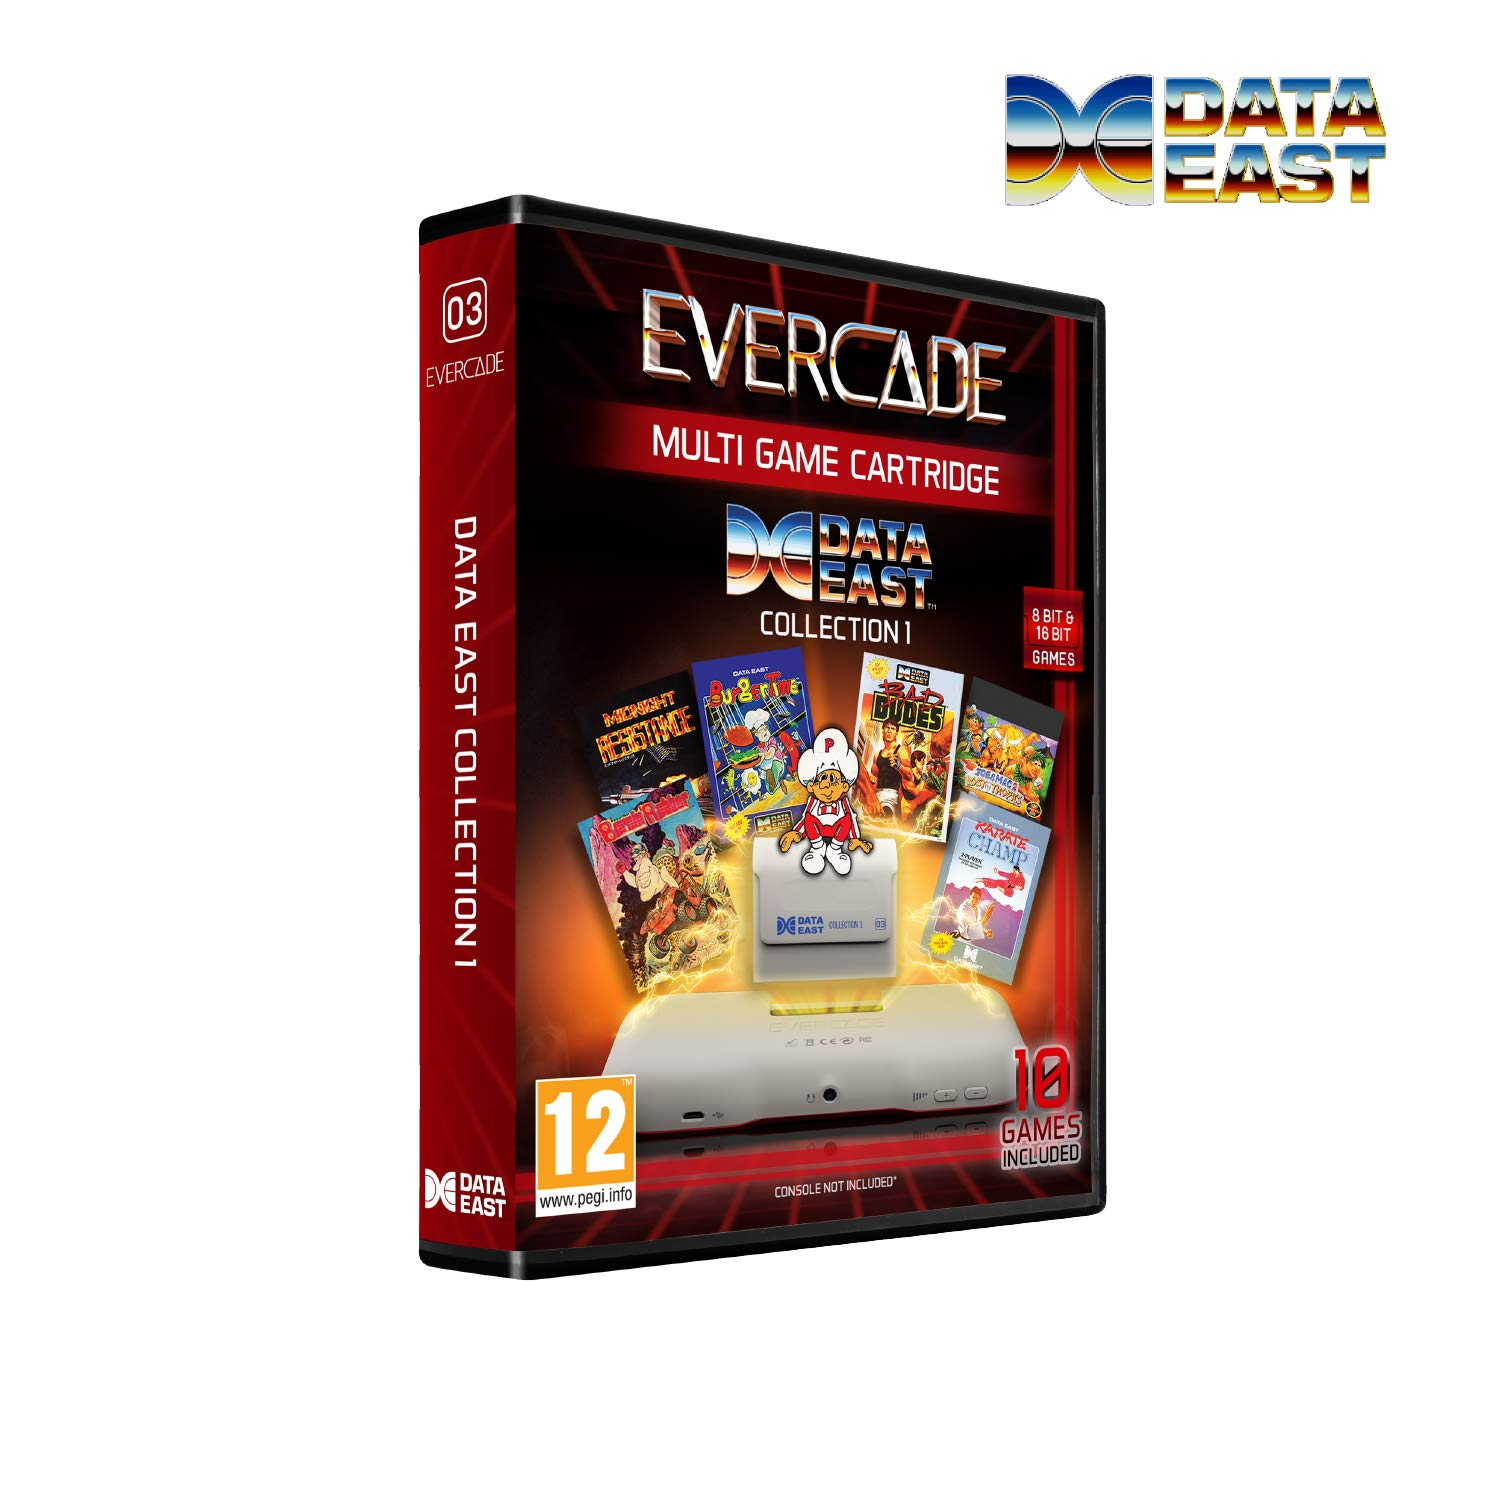 Evercade Dataeast Cartridge Collection 1 - Electronic Games